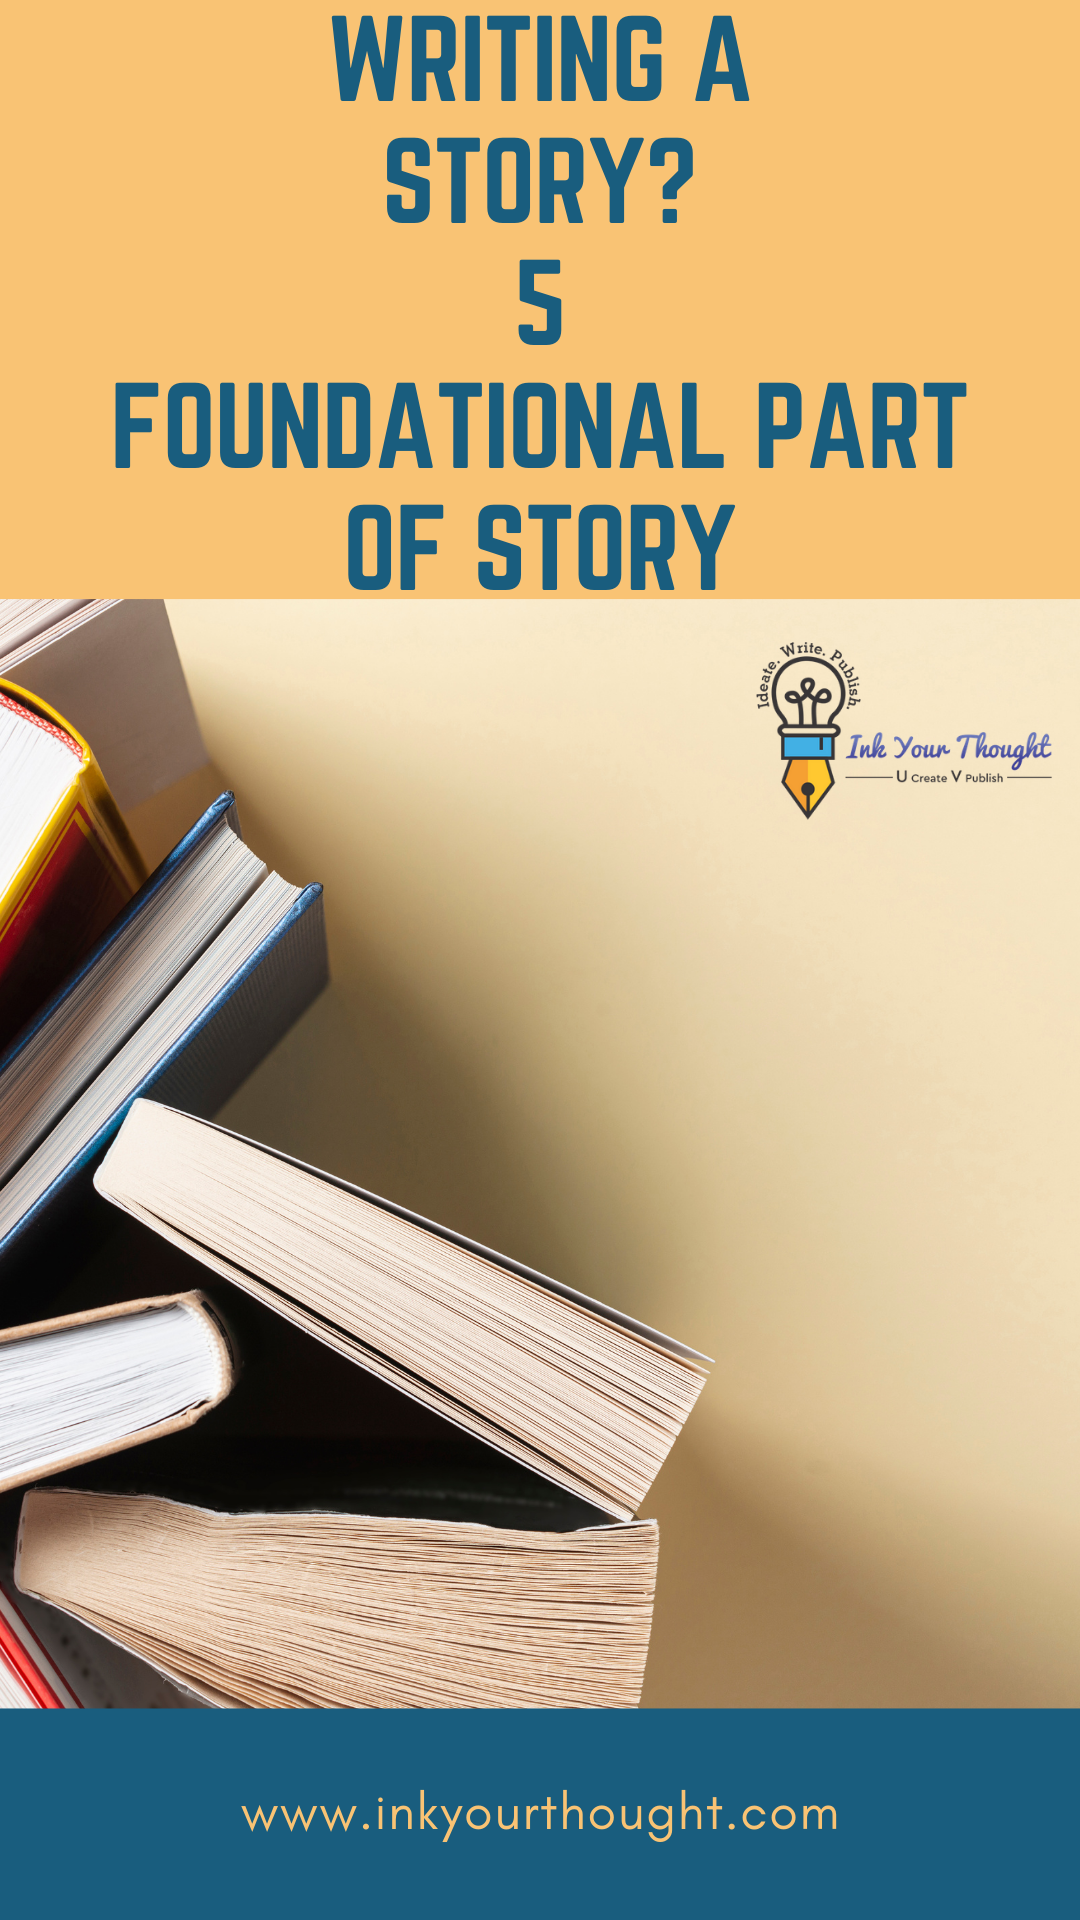 Writing a Story? 5 Foundational part of the story